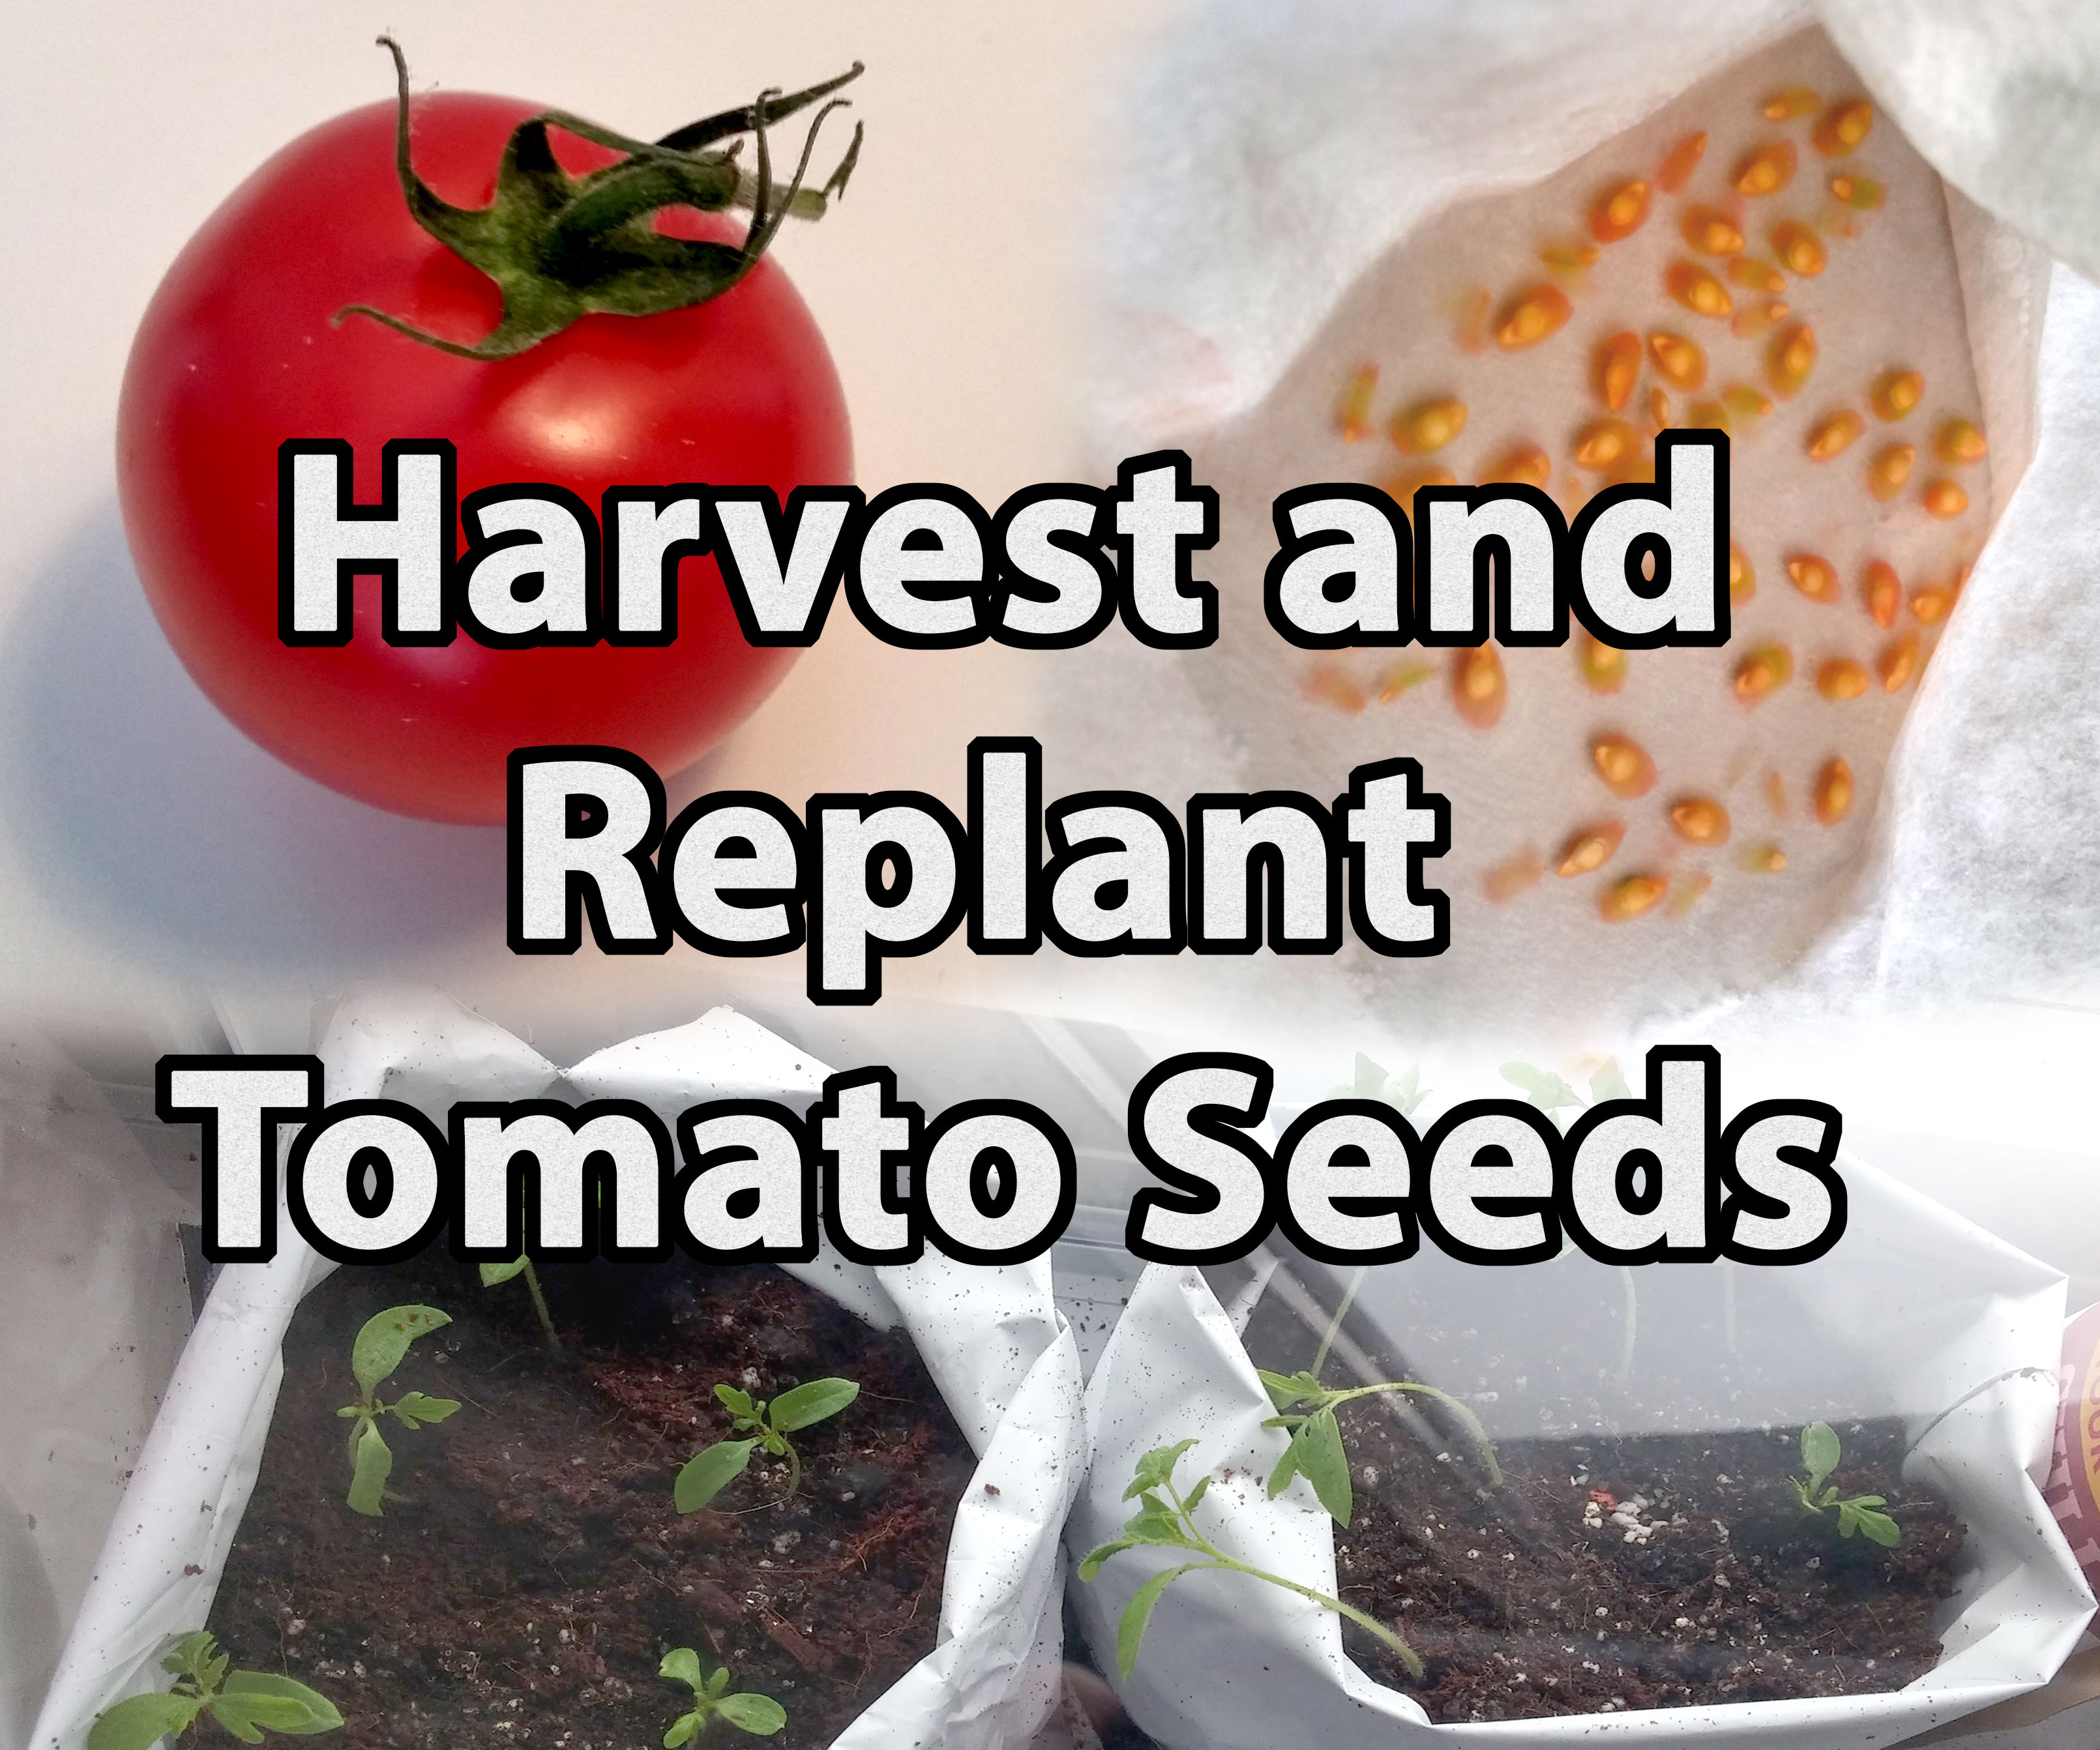 How to Harvest and Replant Tomato Seeds